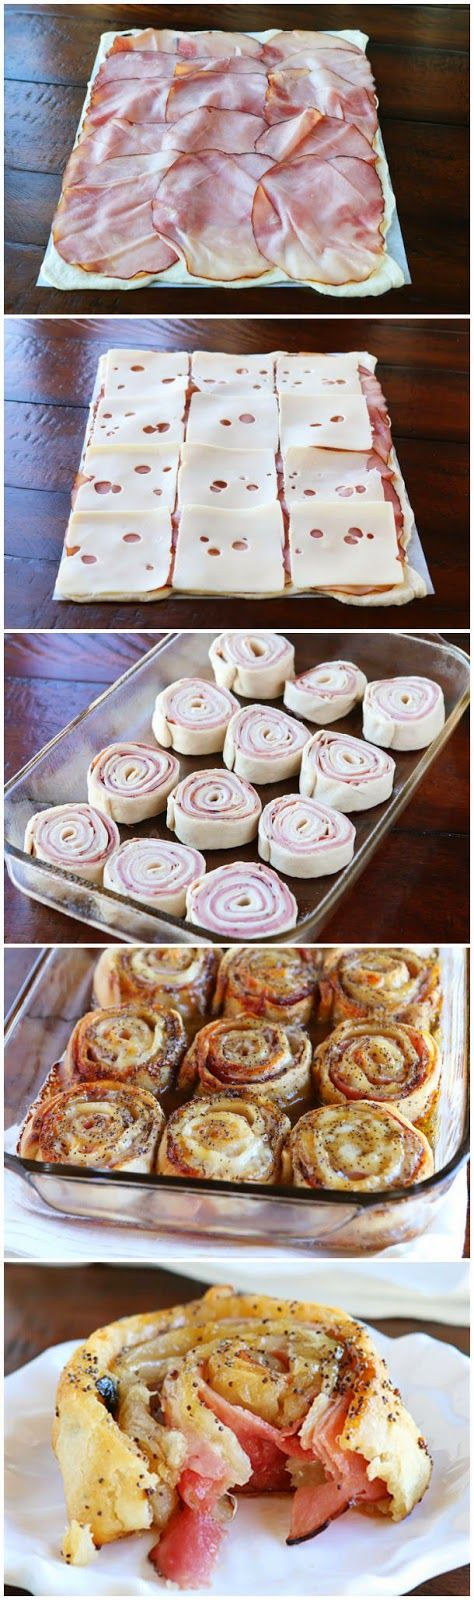 Hot Ham & Cheese Party Rolls - I will try these with some left over pizza dough. I think you could make Reuben style too.